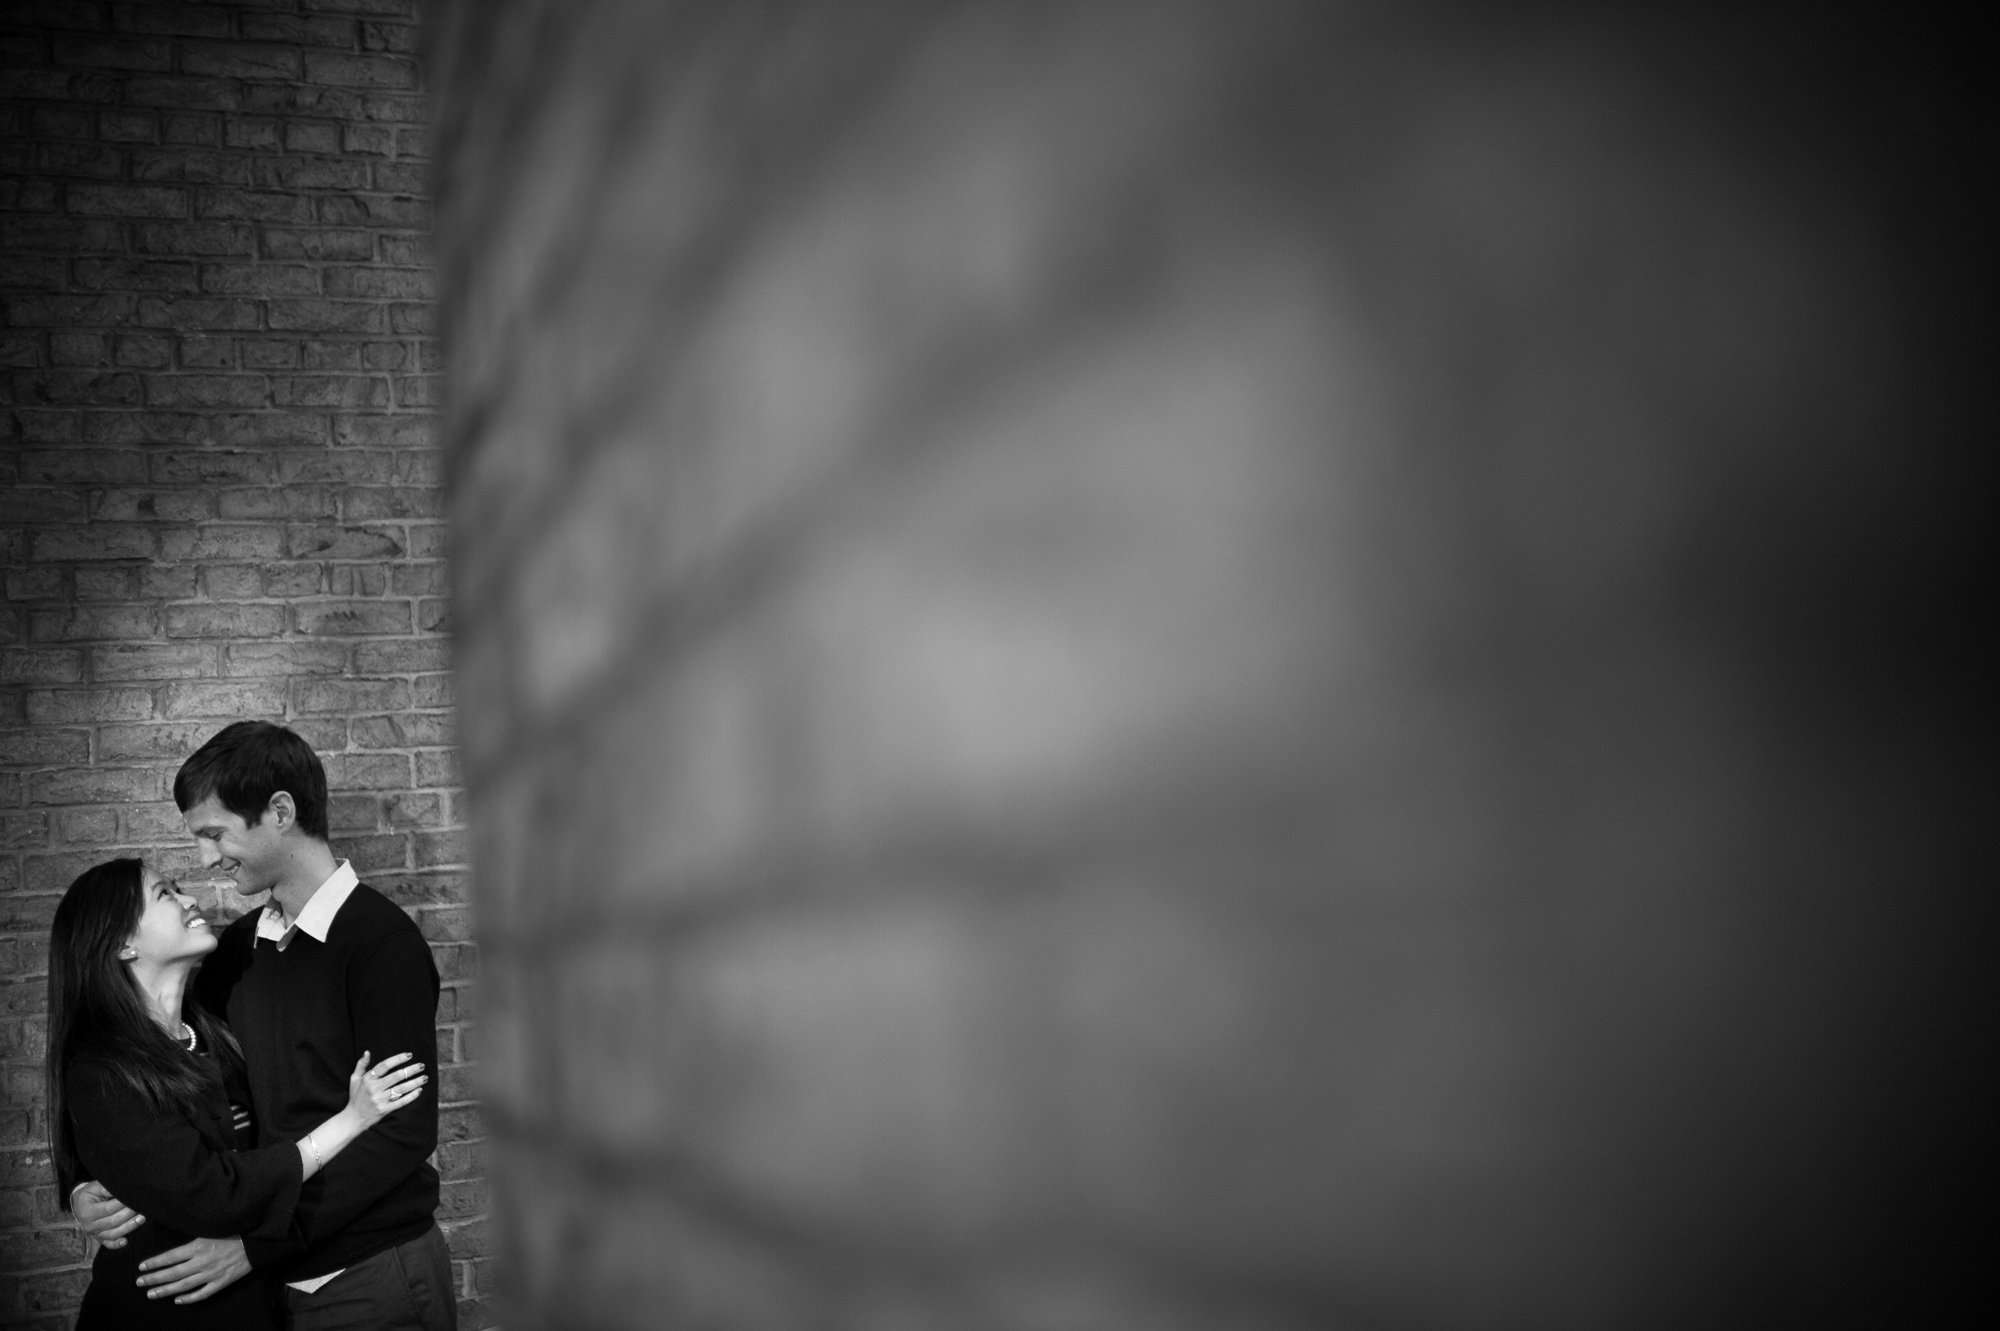 toronto-engagement-photograph-005.jpg